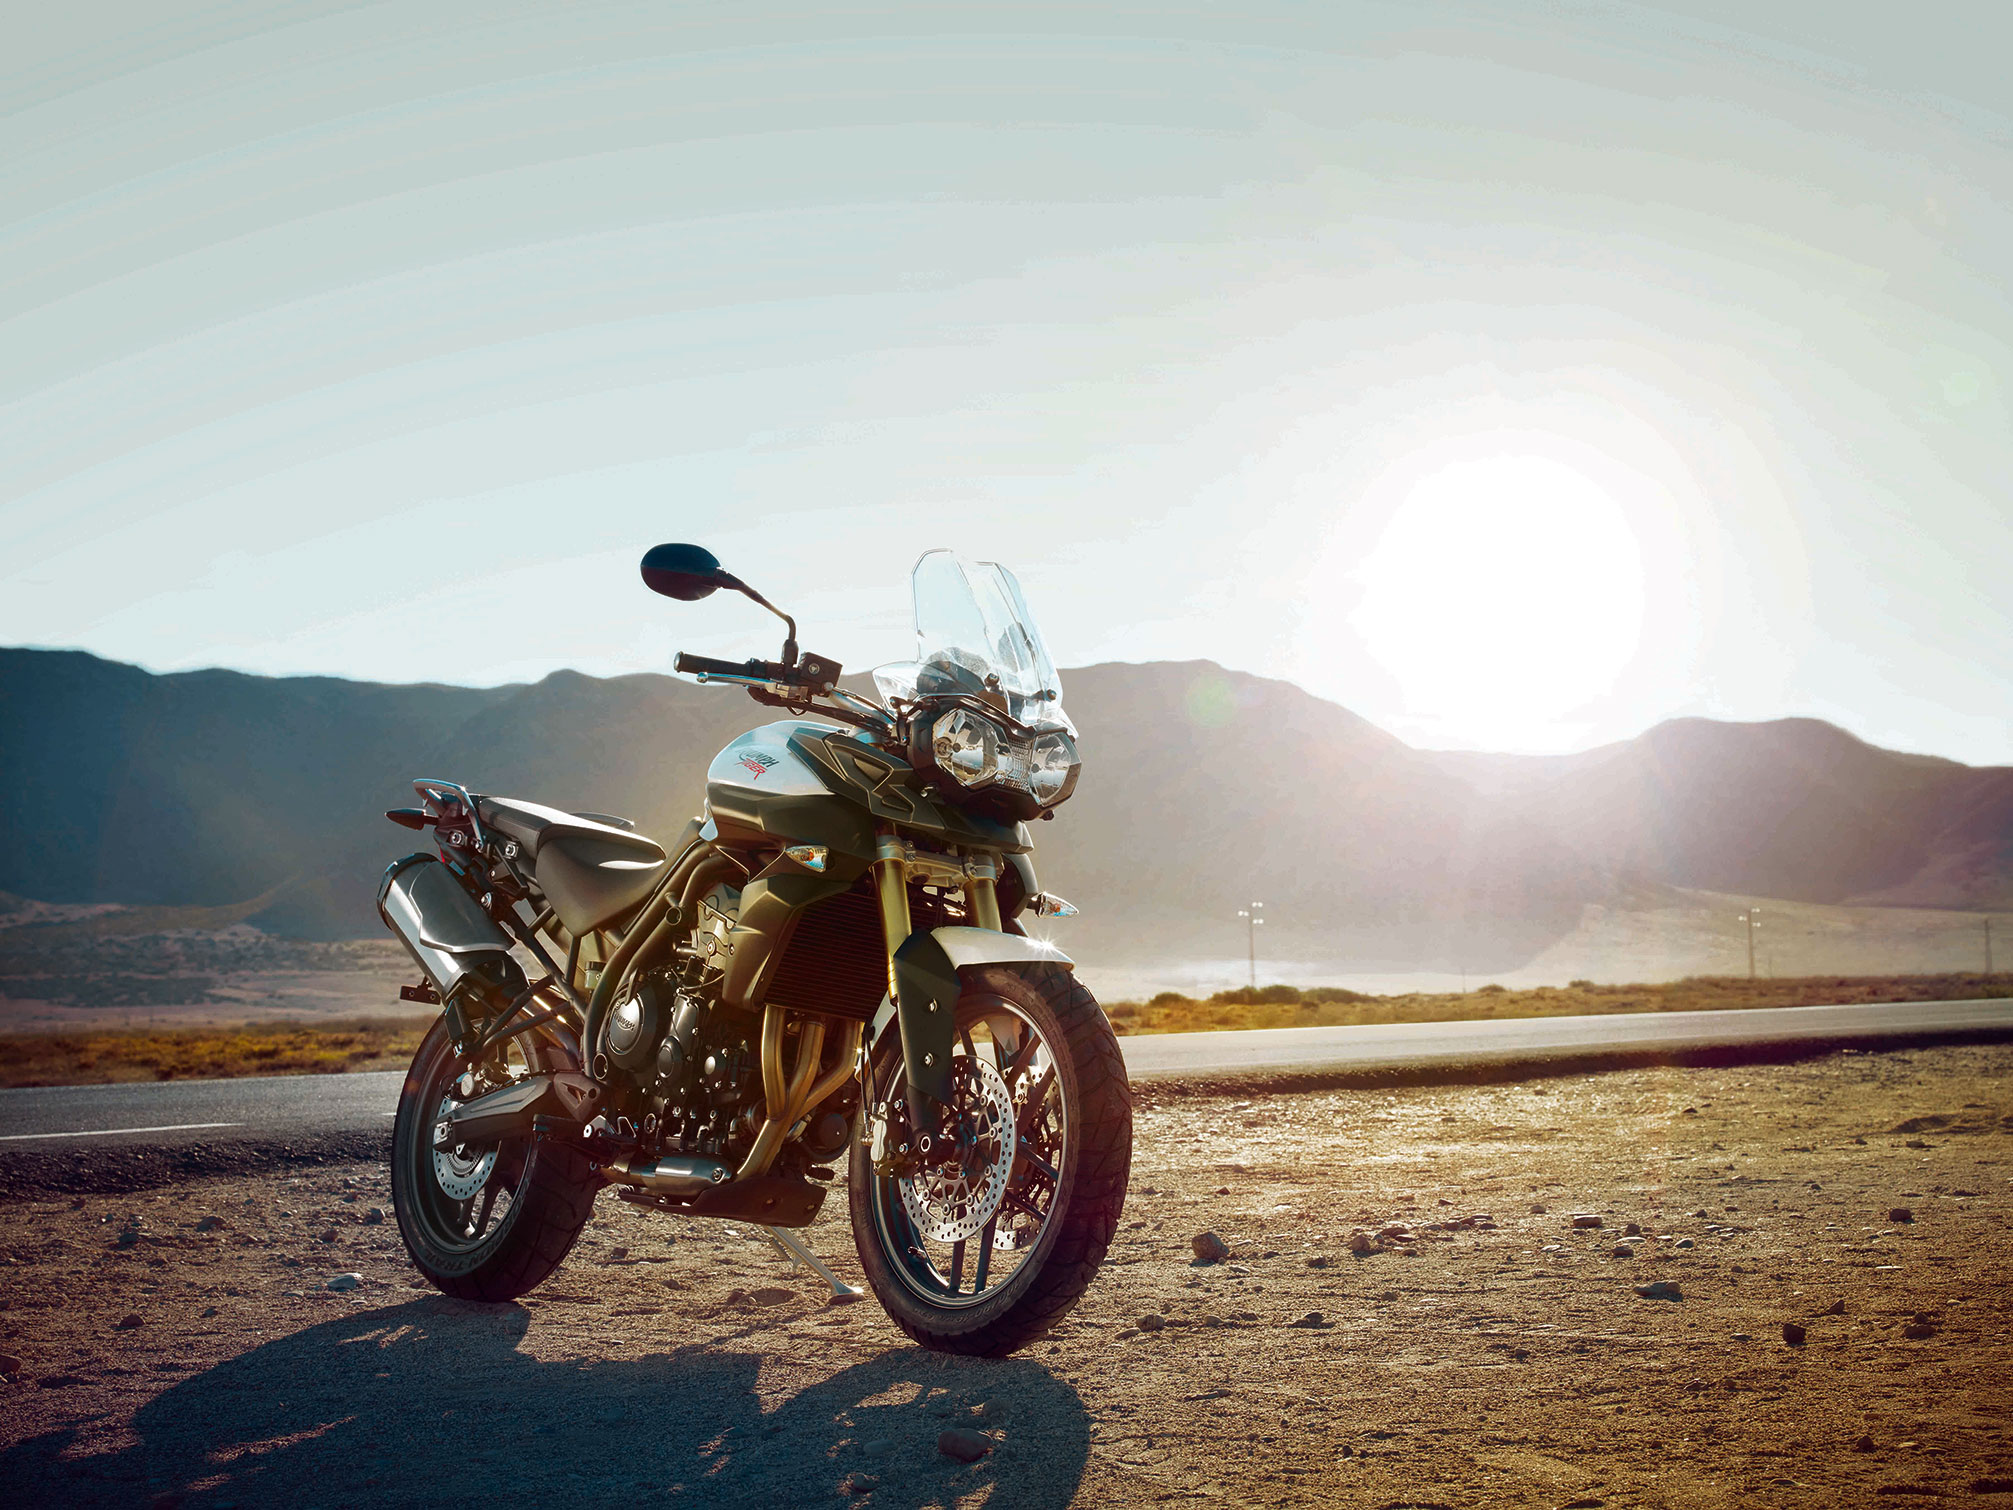 Tiger Art Wallpaper Jpg 960 800: 2013 Triumph Tiger 800 Review